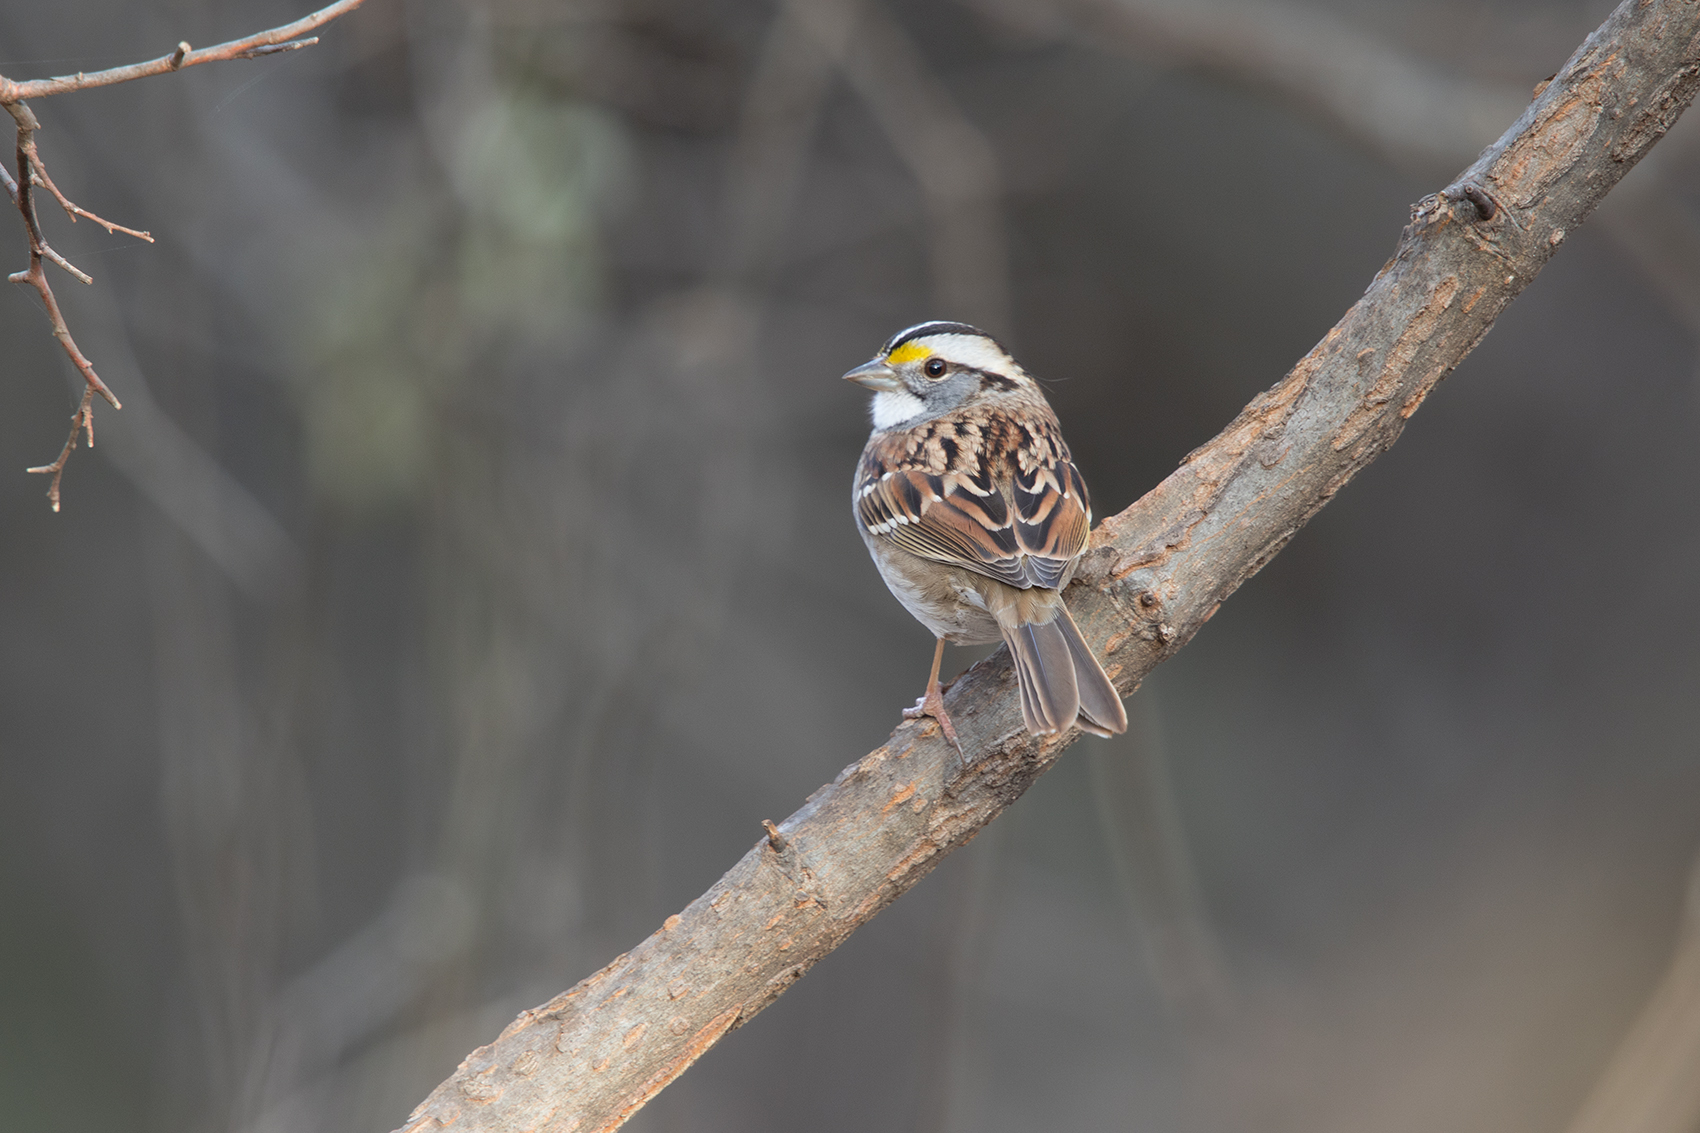 WHITE-THROATED SPARROW - TAYLOR COUNTY TX DEC. 2016